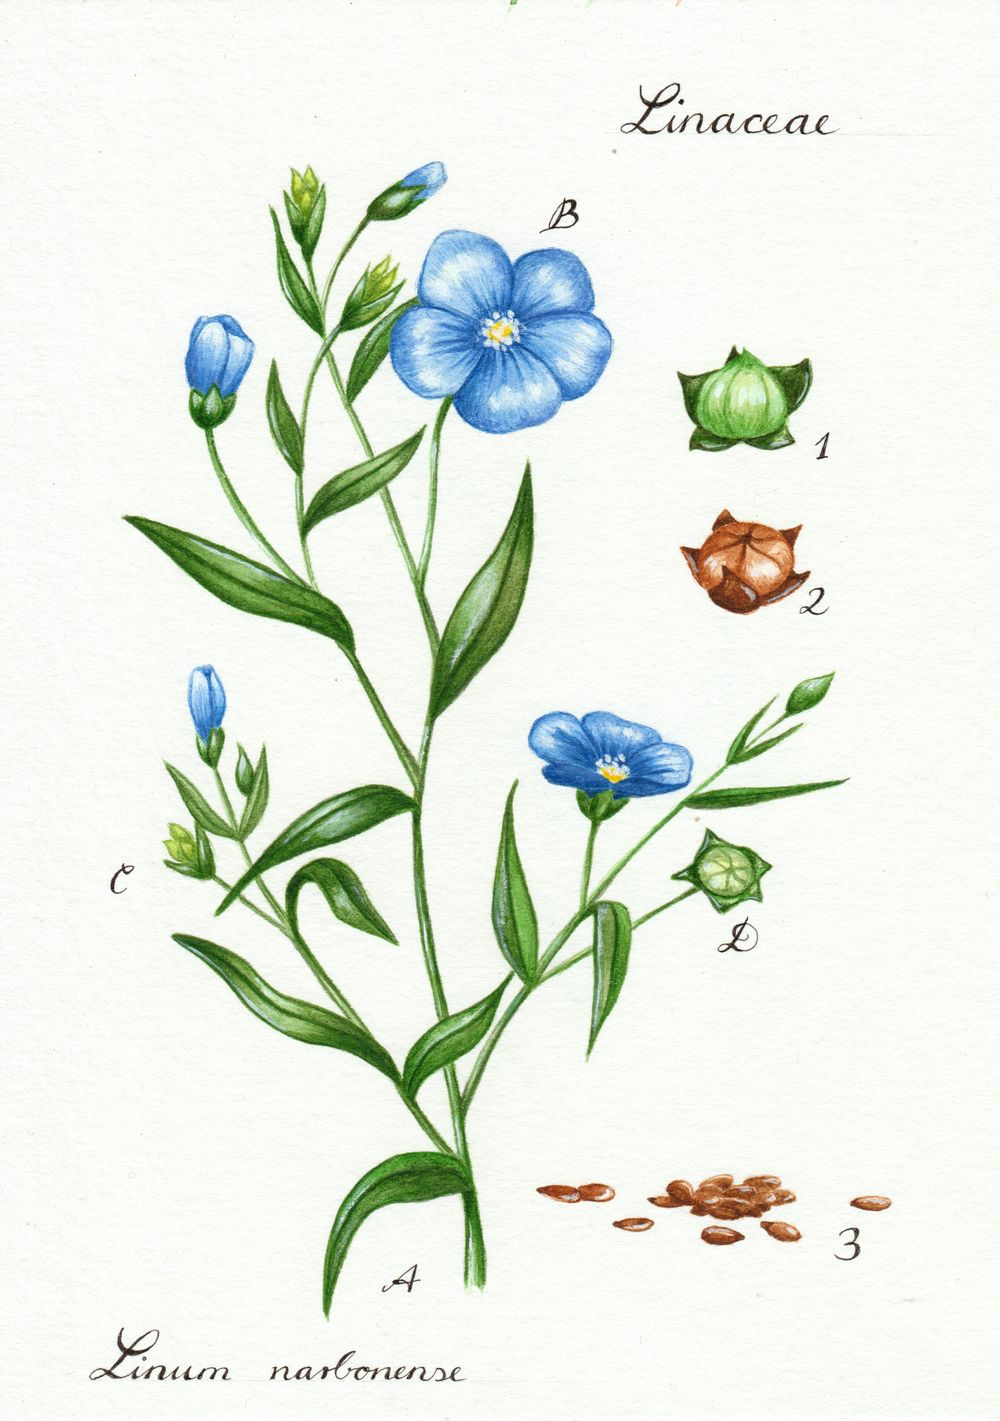 Linseed illustration - image 3 - student project